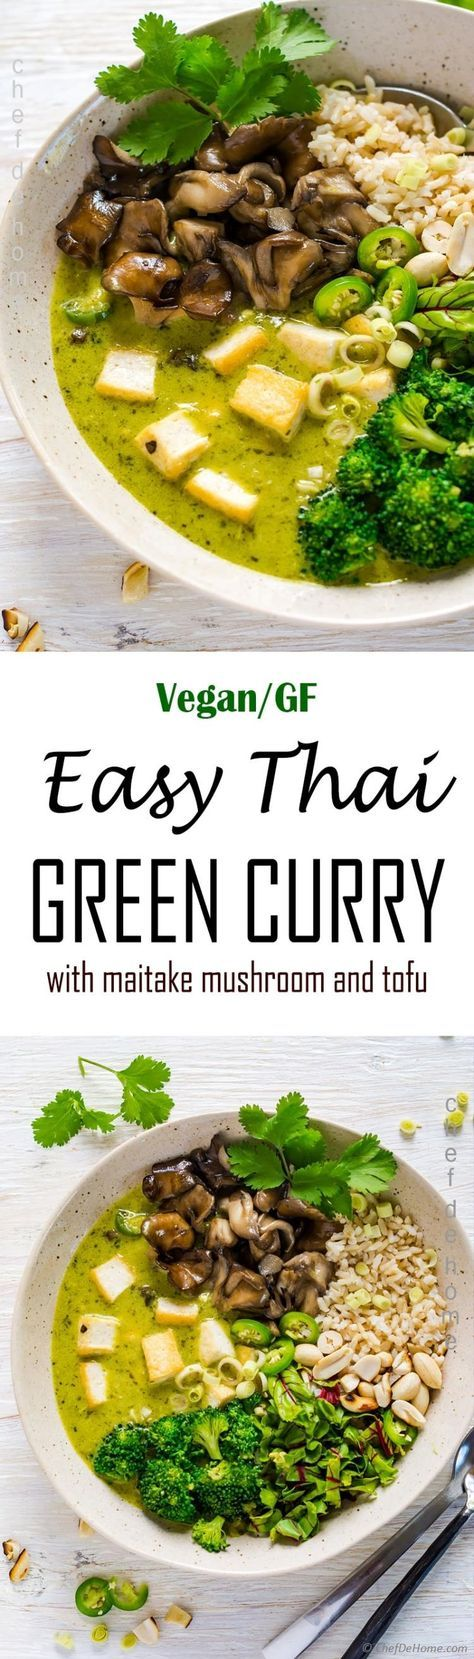 Easy Homemade Thai Green Curry Vegan, gluten free, and healthy curry with homemade Thai green curry paste, maitake mushrooms, broccoli and crispy tofu.